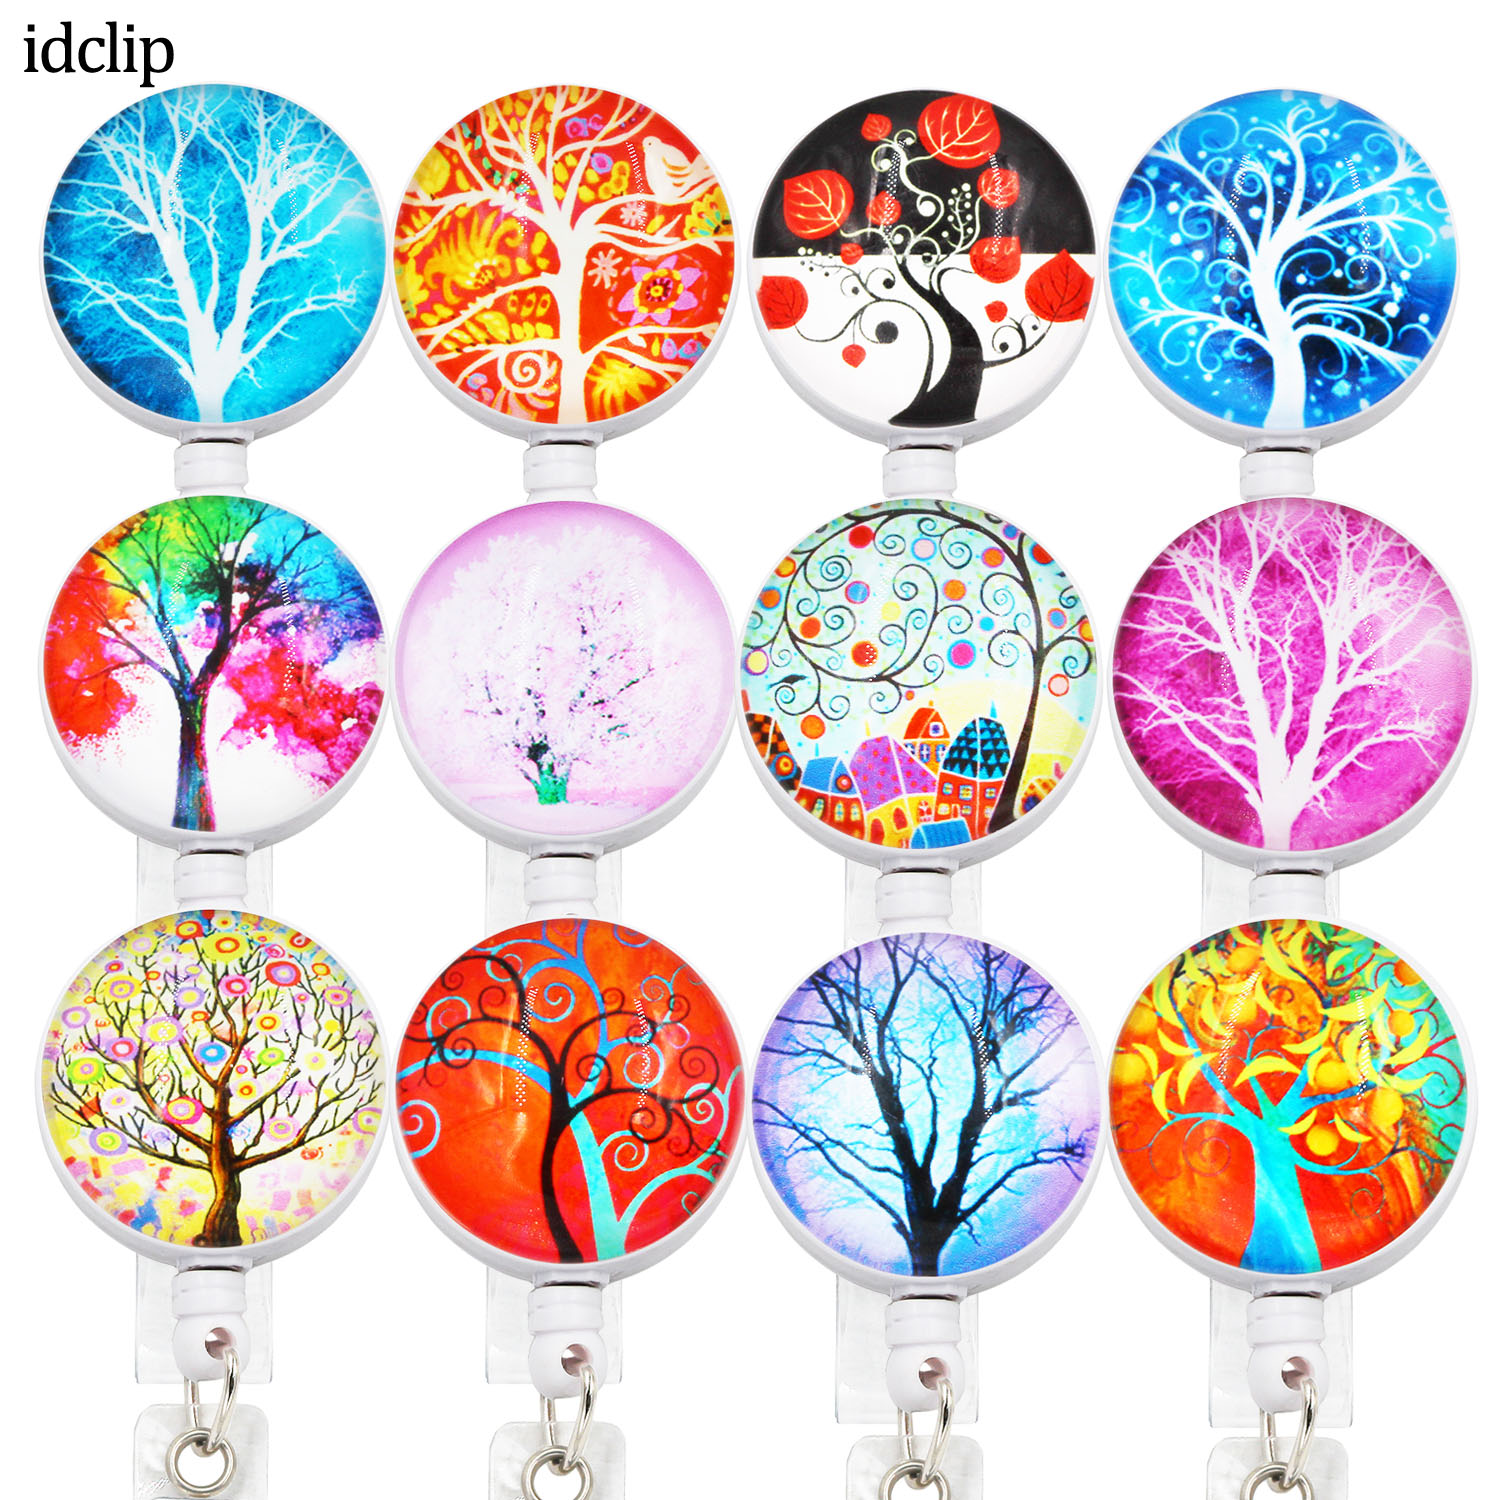 Idclip 3D Tree ID Retractable Badge Holder With Alligator Clip Retractable Cord ID Badge